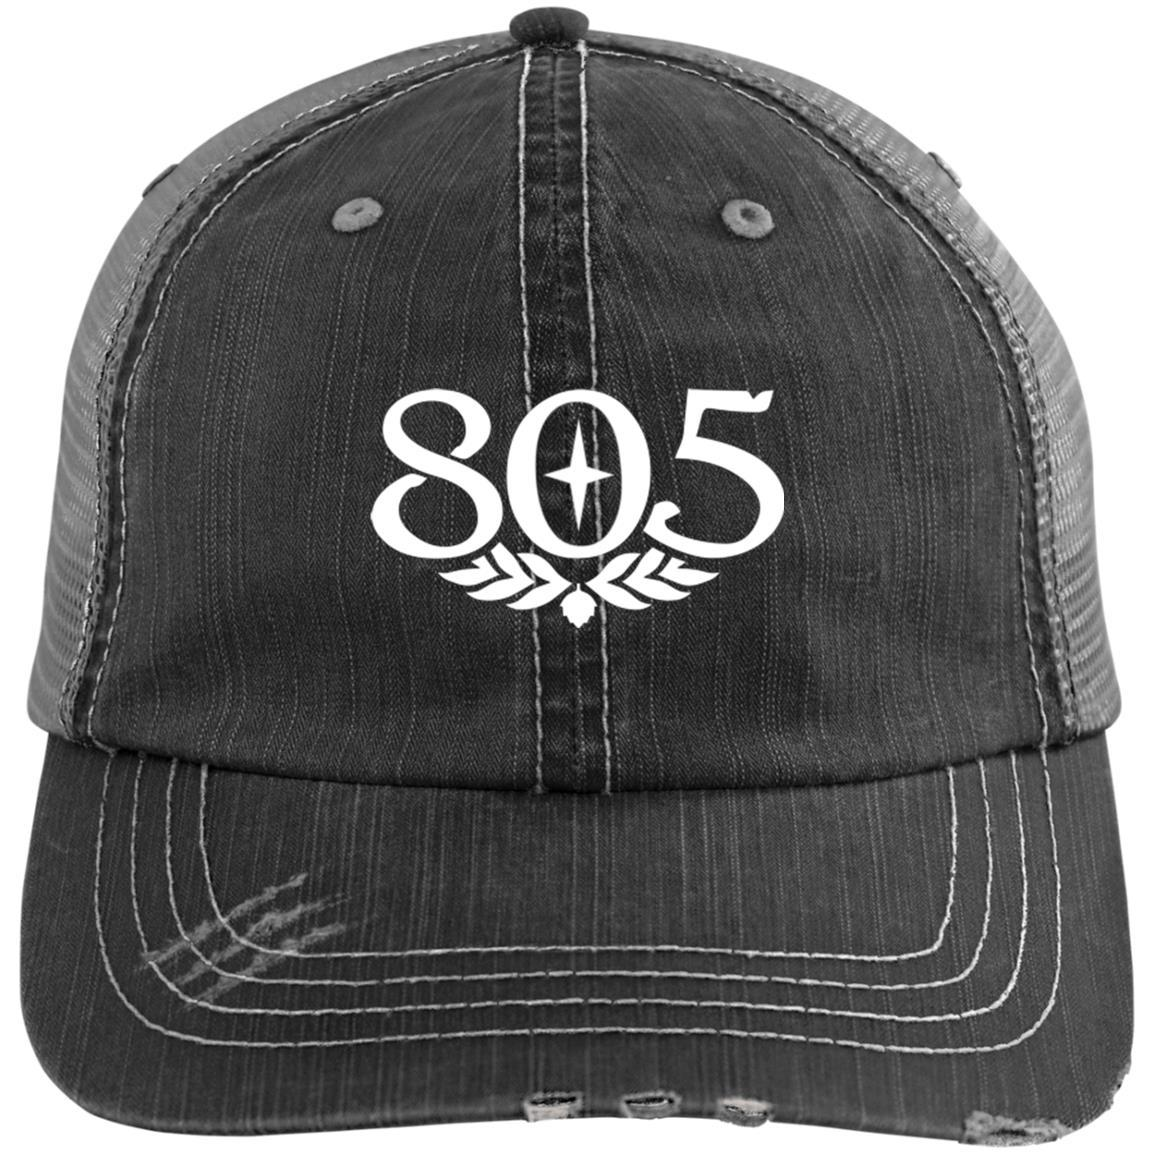 805 Beer - Trucker Cap Style / Color / Size